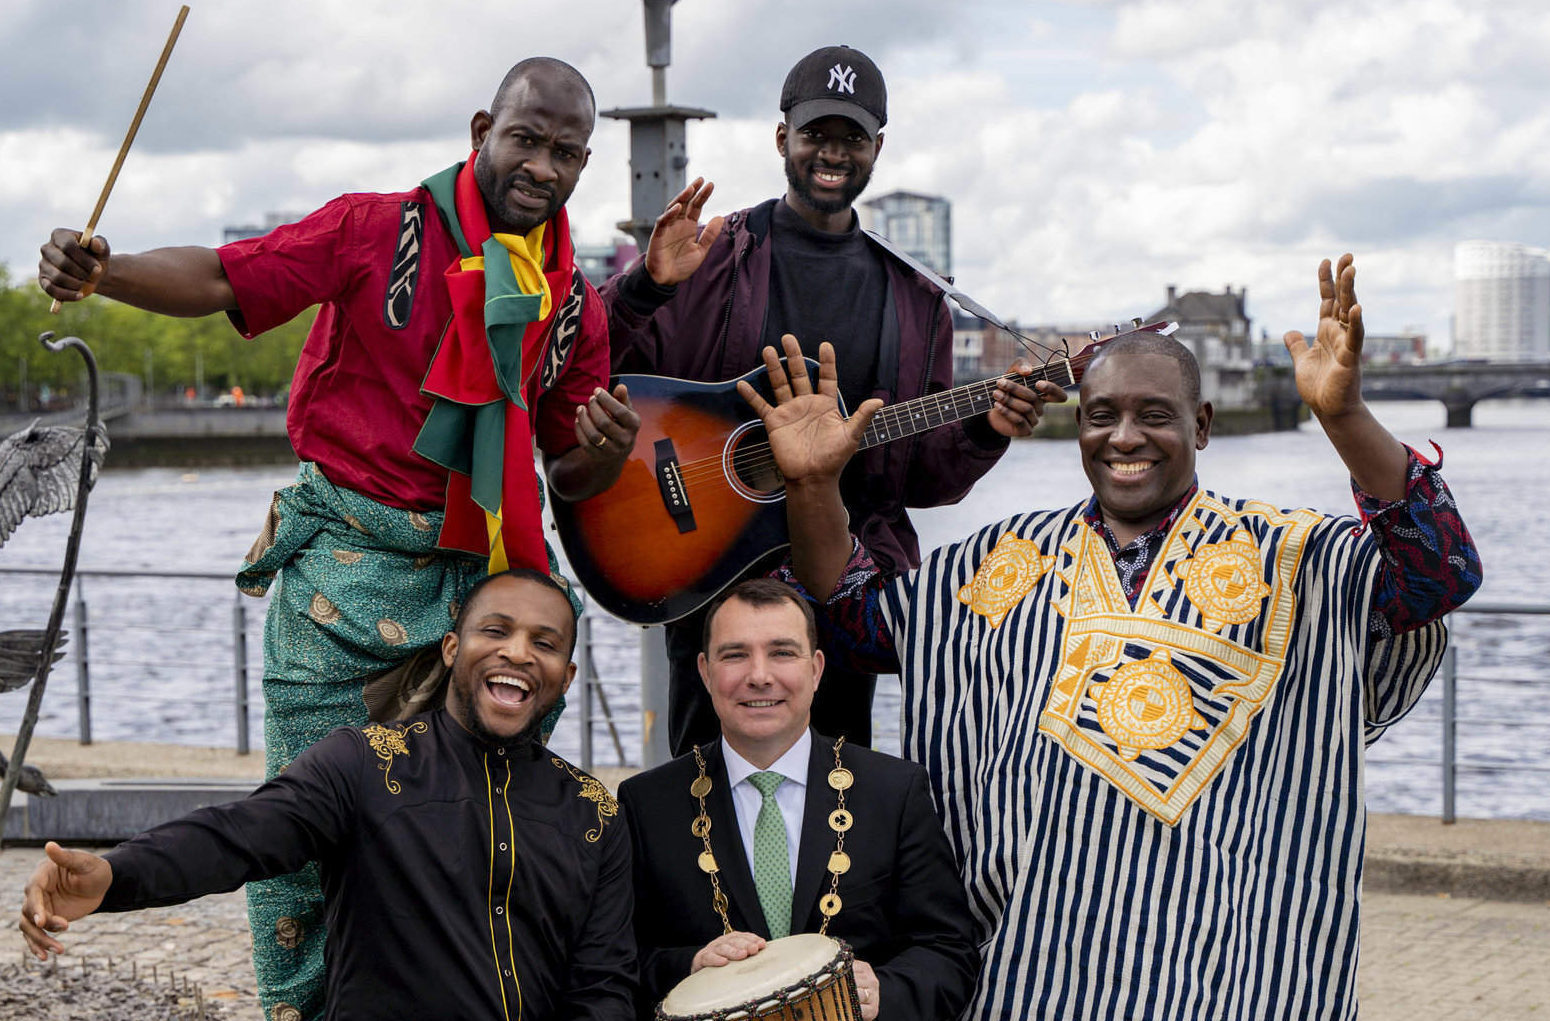 Africa Day Limerick 2019